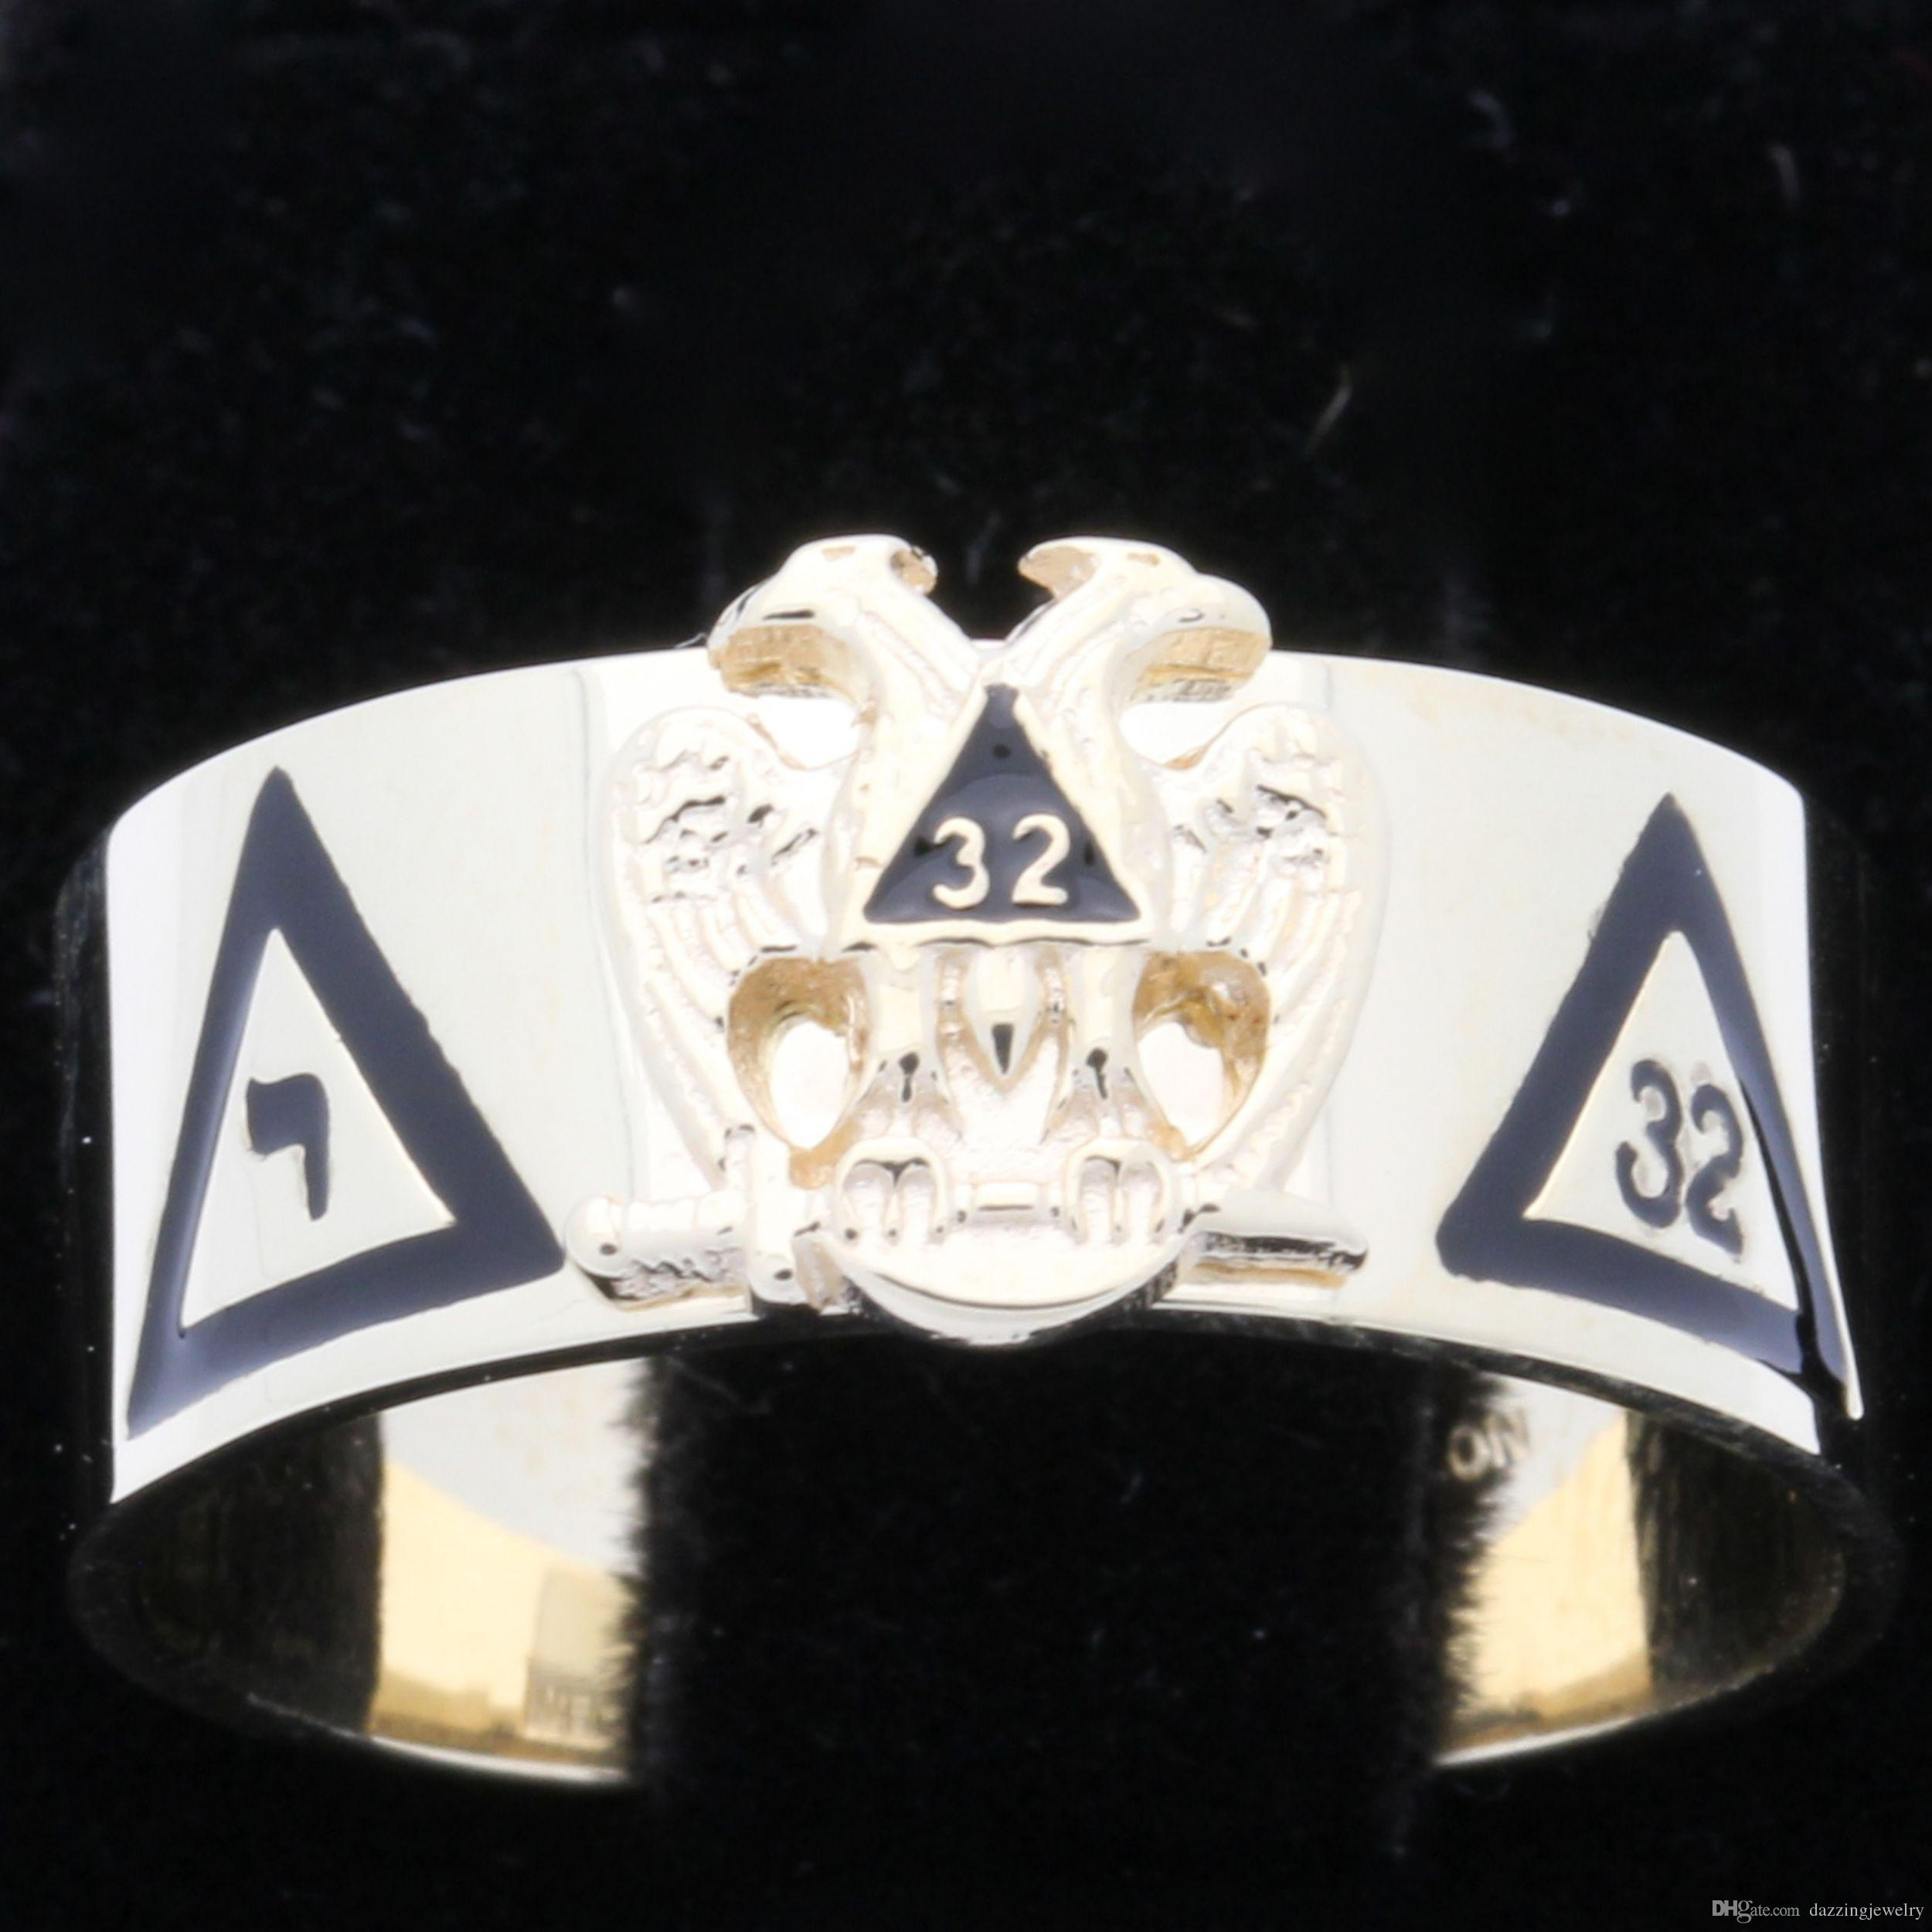 Men's 316 stainless steel Scottish Rite 32nd degree masonic ring with eagle wings up or wings down 32nd Yod rings jewel